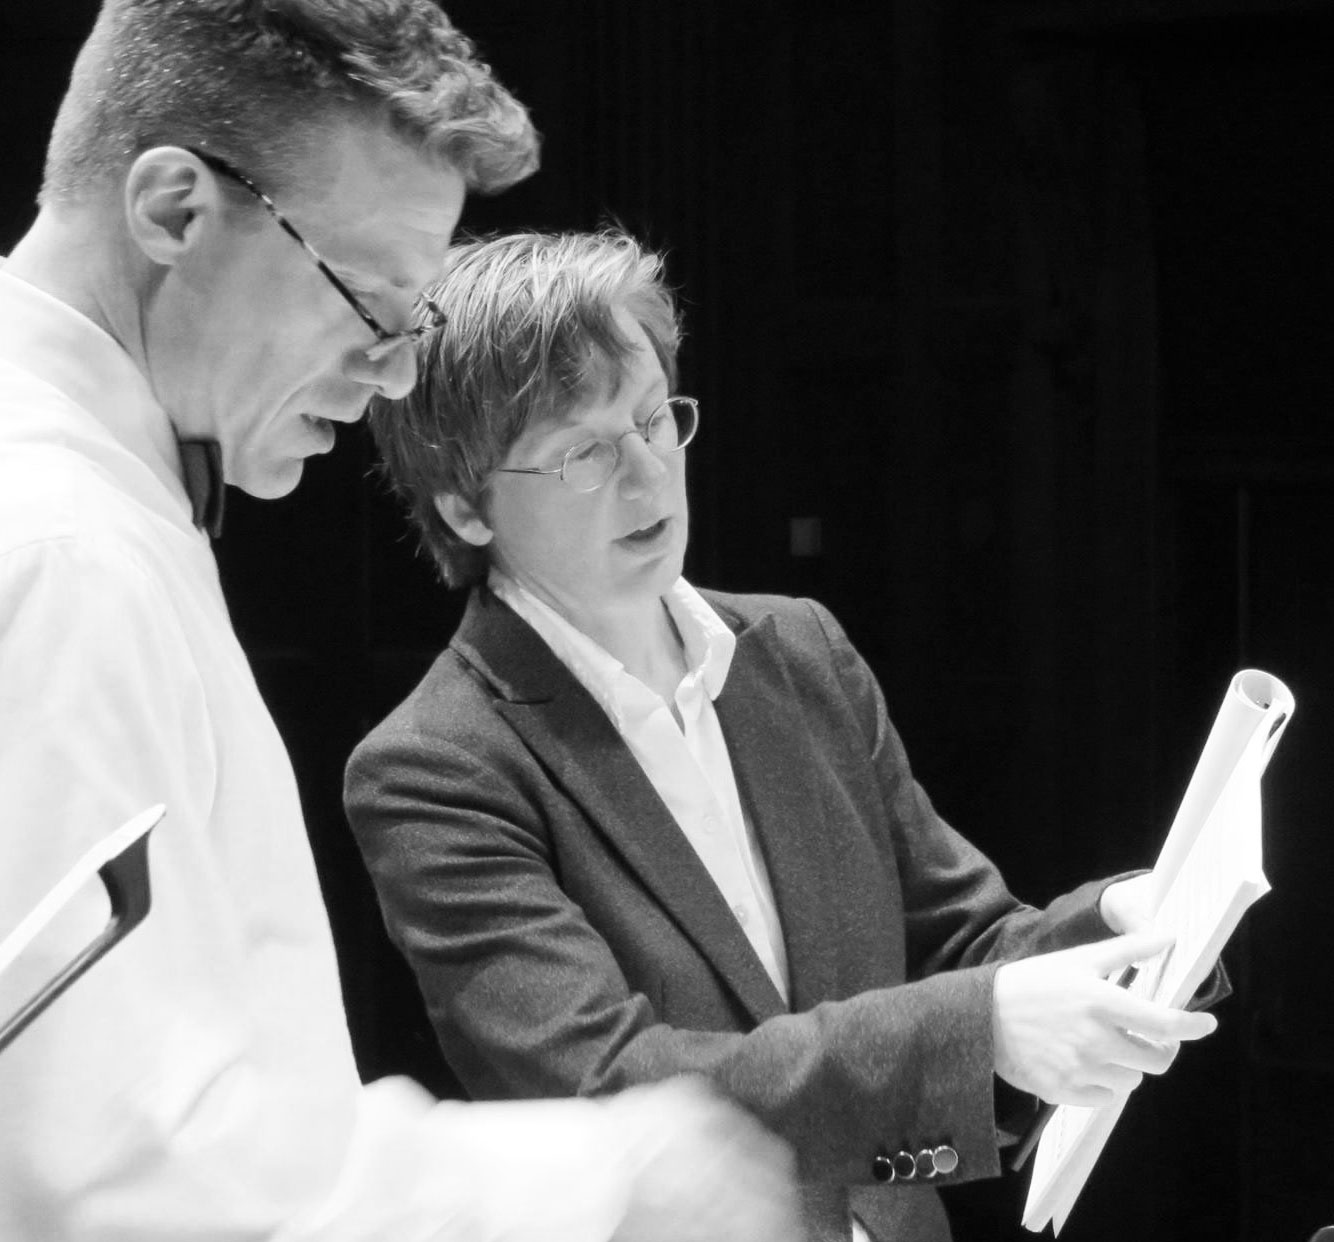 Eastman Women's Chorus conductor Philip Silvey and Chris Lastovicka. Rehearsal of premiere performance of Ryan Songs, Kilbourn Hall, Eastman School of Music, April 17, 2015.